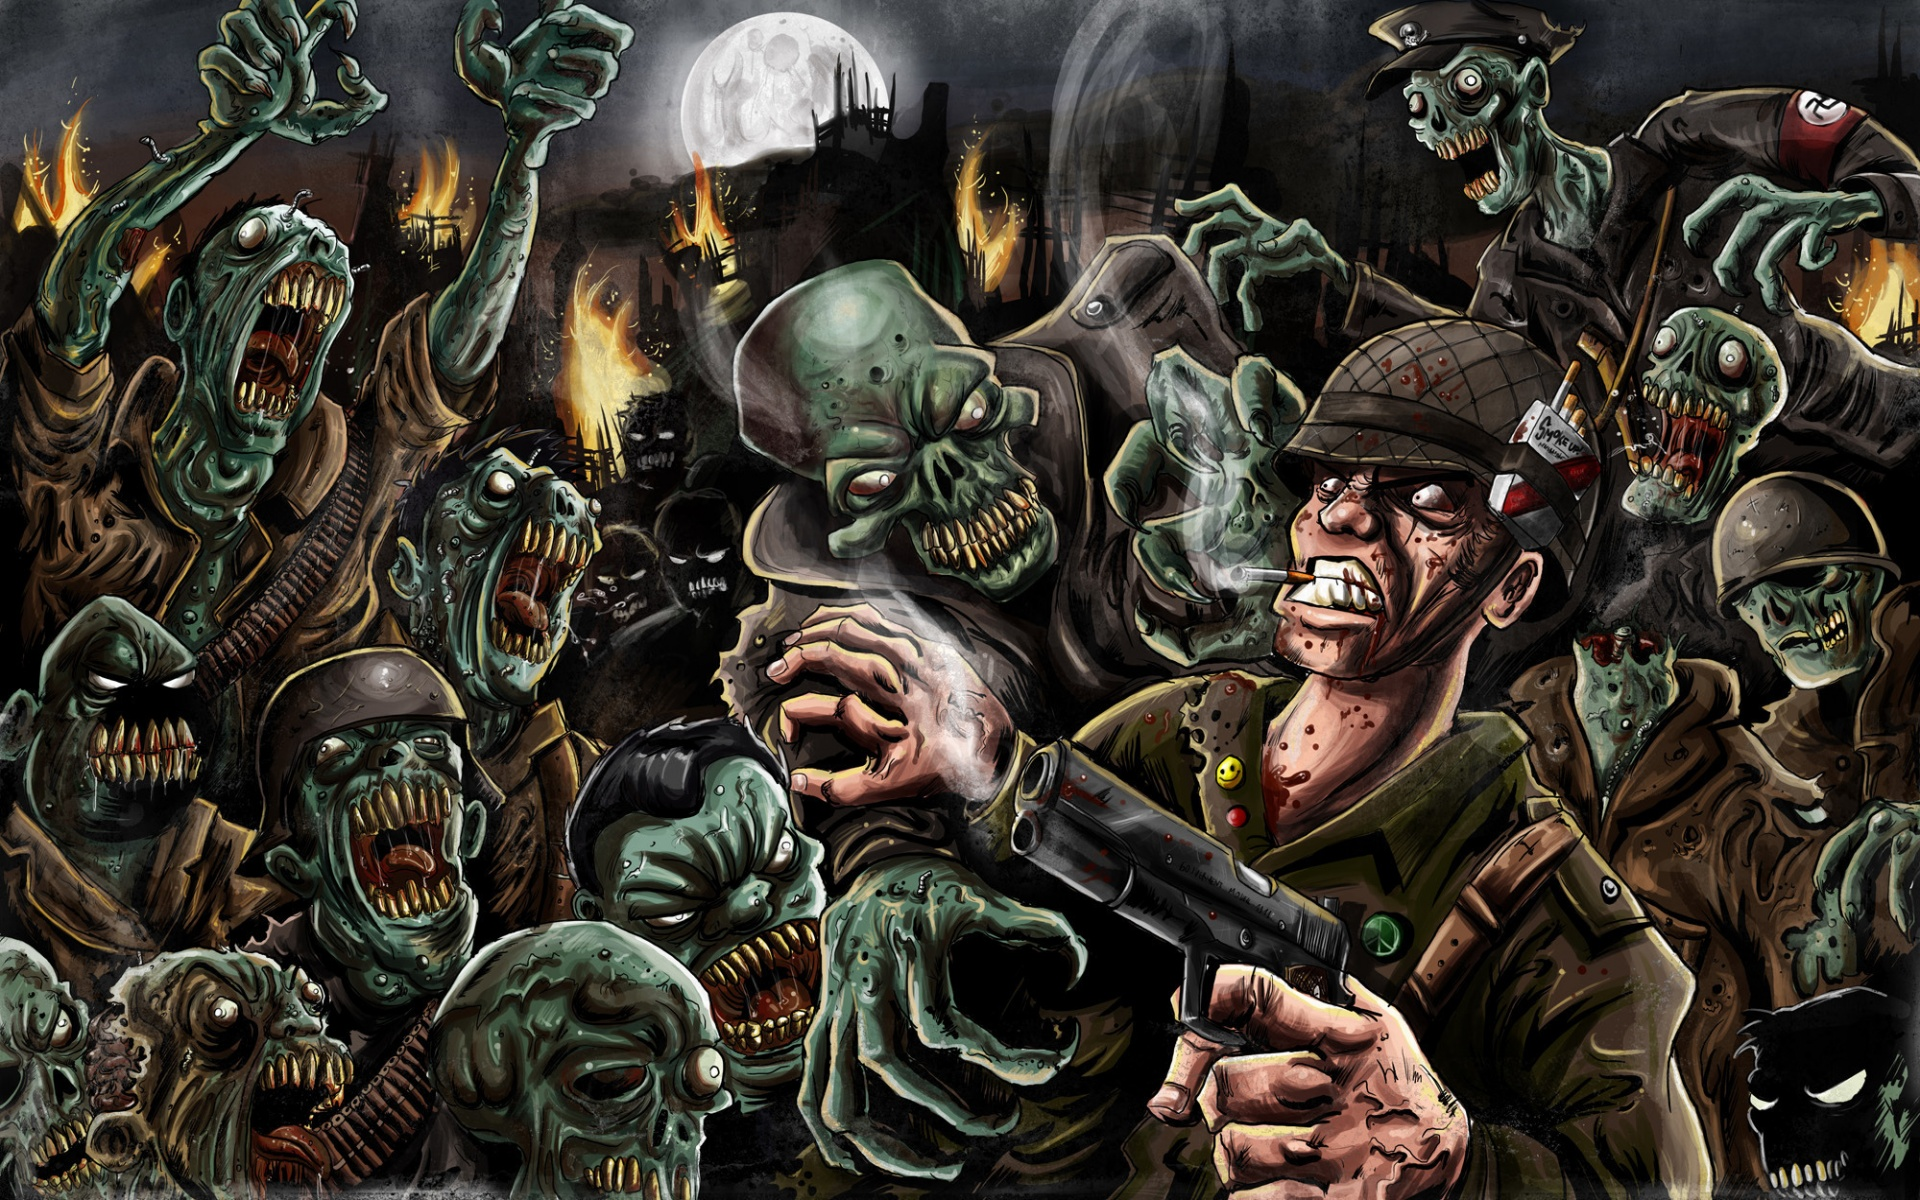 hd wallpapers site dark zombies blood horror monsters creatures scary soldiers warriors